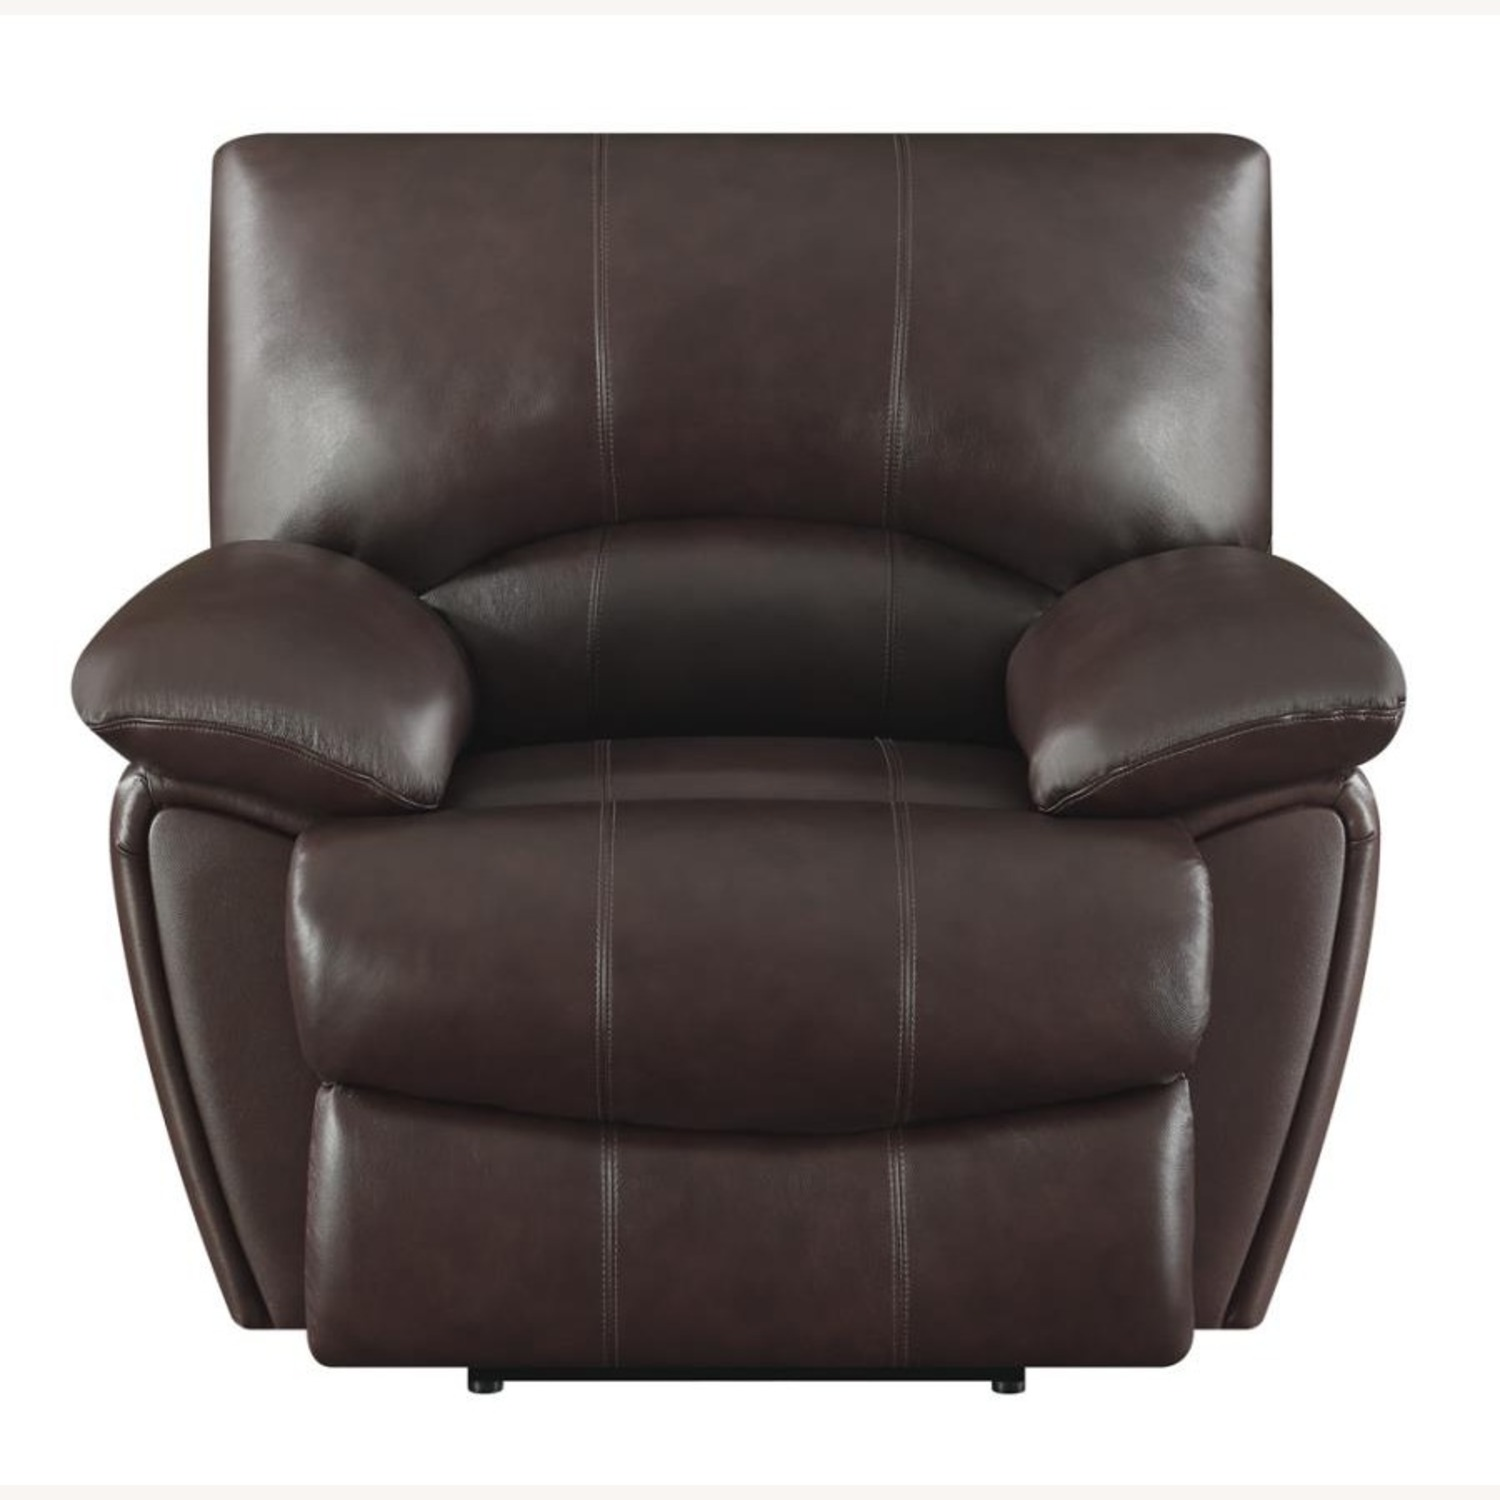 Recliner Chair In Chocolate Top Grain Leather - image-2